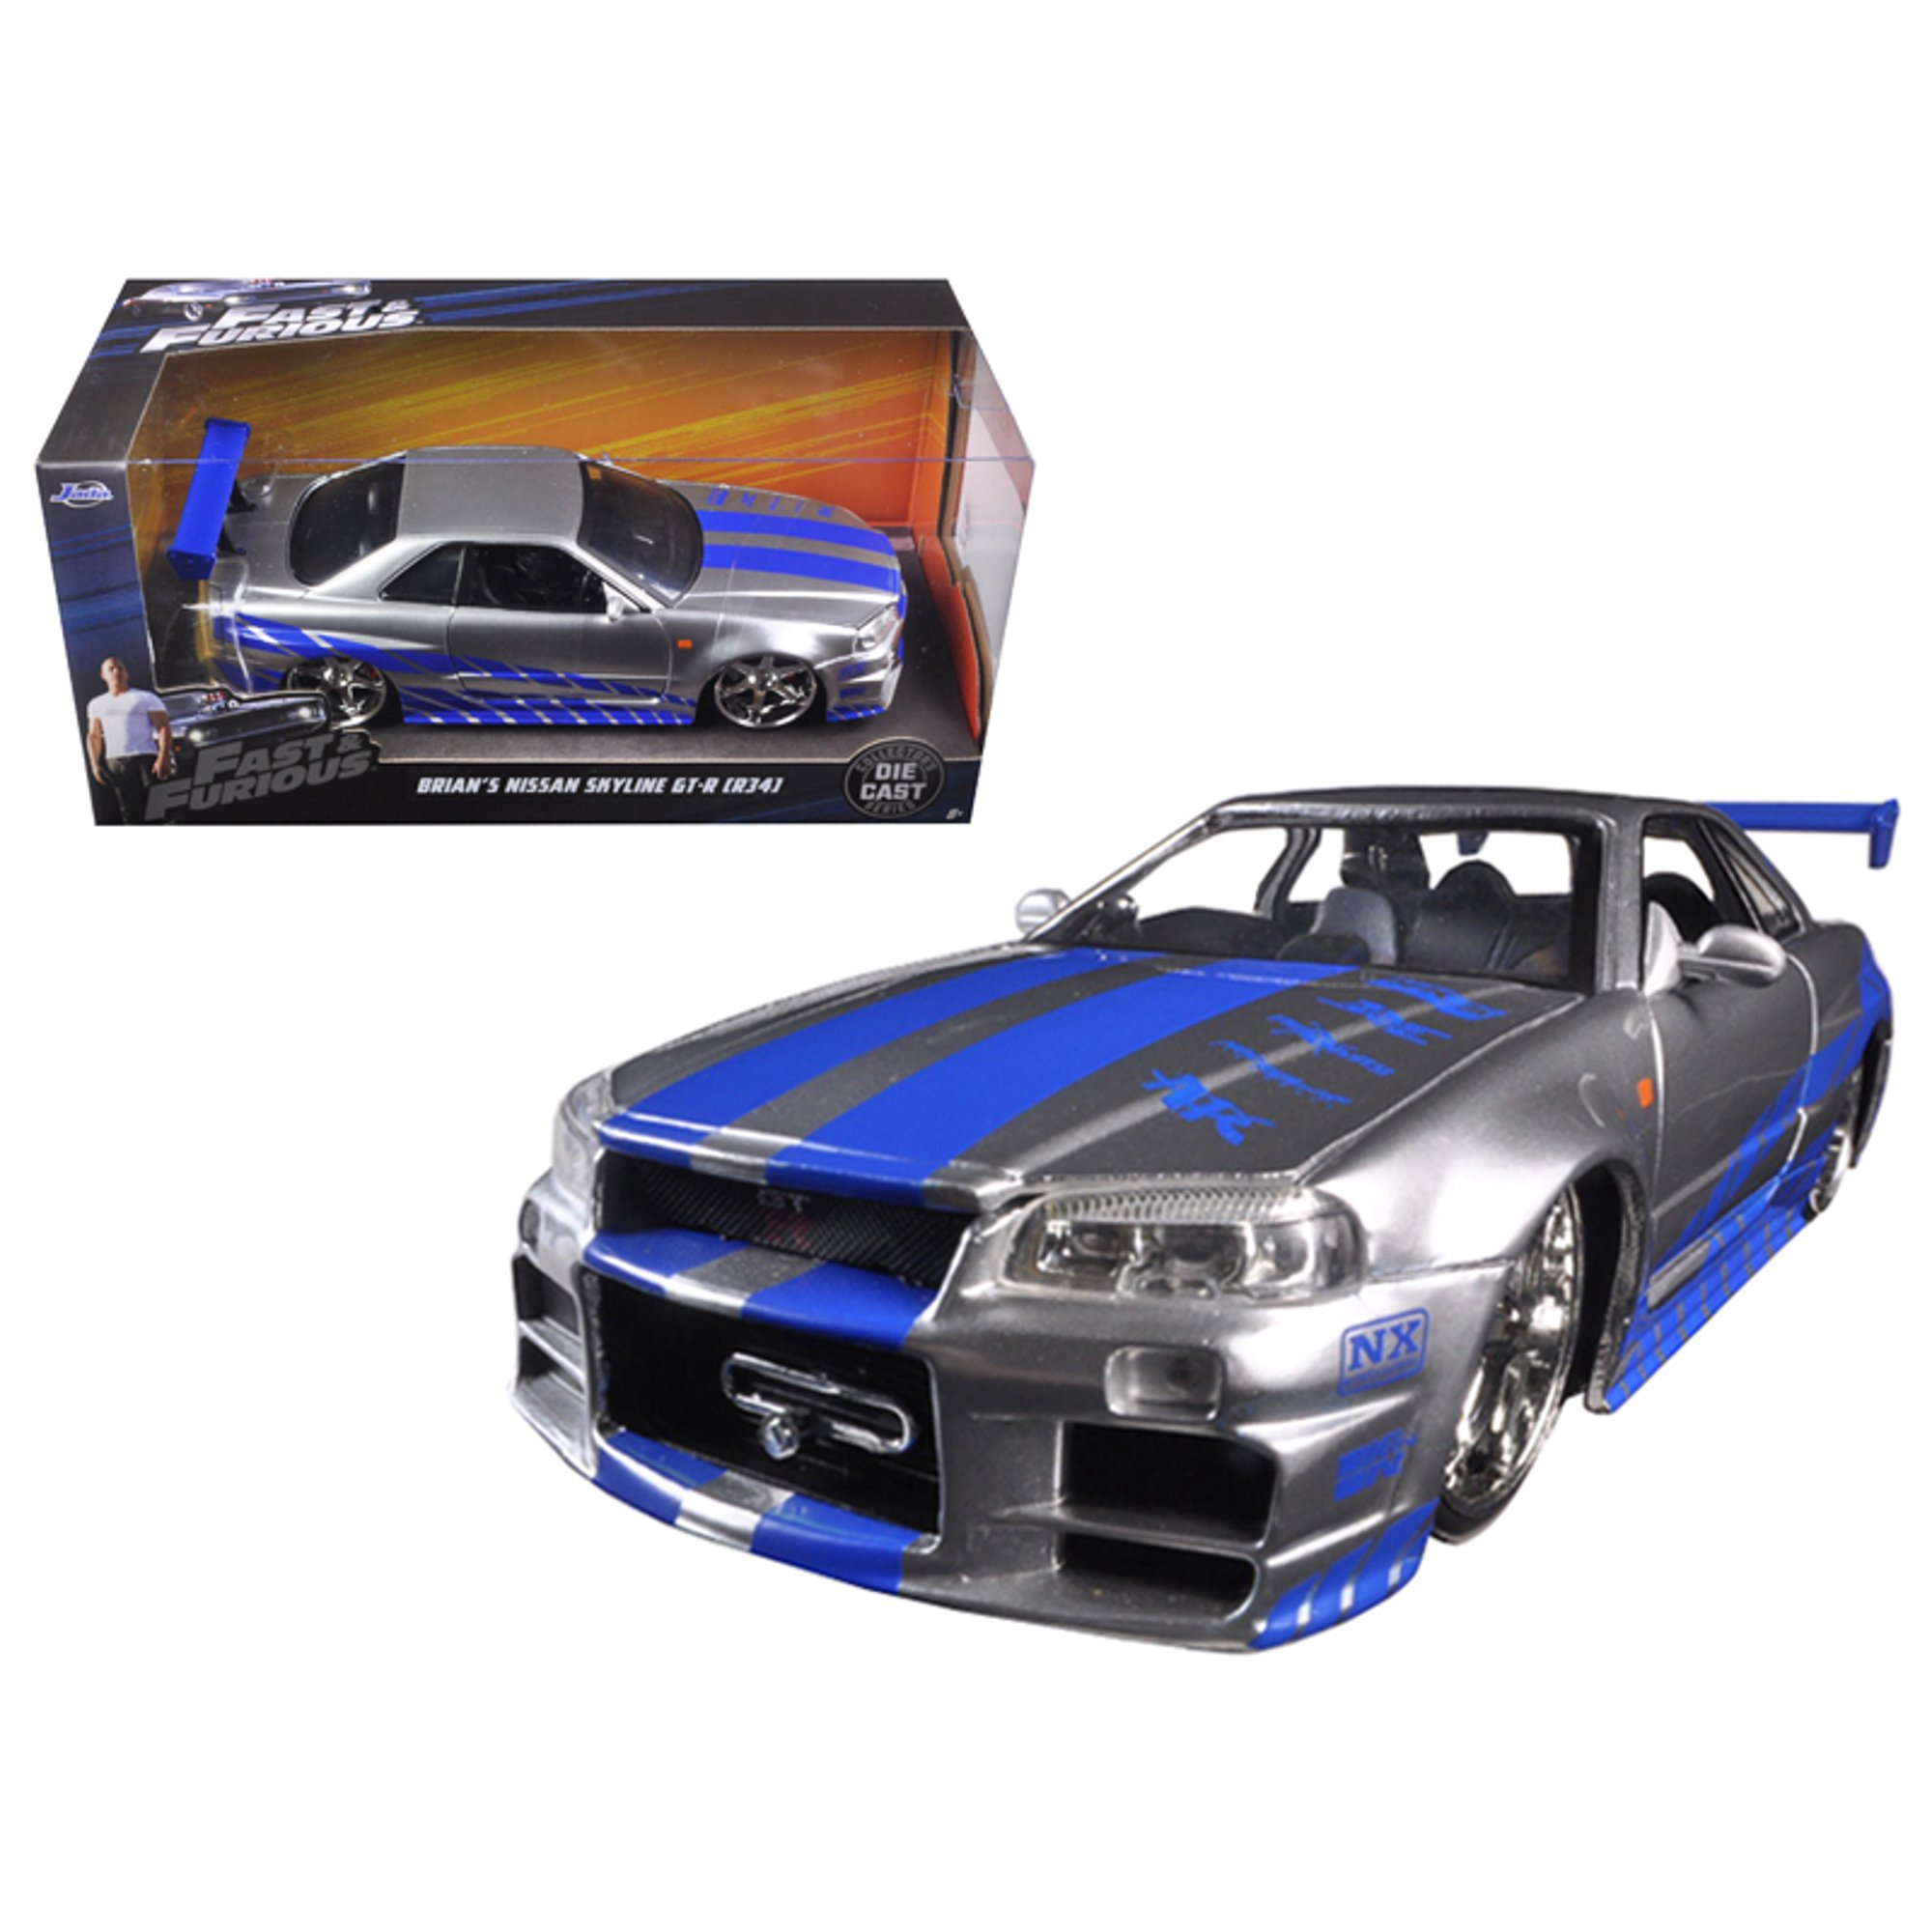 Brian S Nissan Gtr Skyline R34 Silver Blue Fast Furious Movie 1 24 Diecast Model Car By Jada